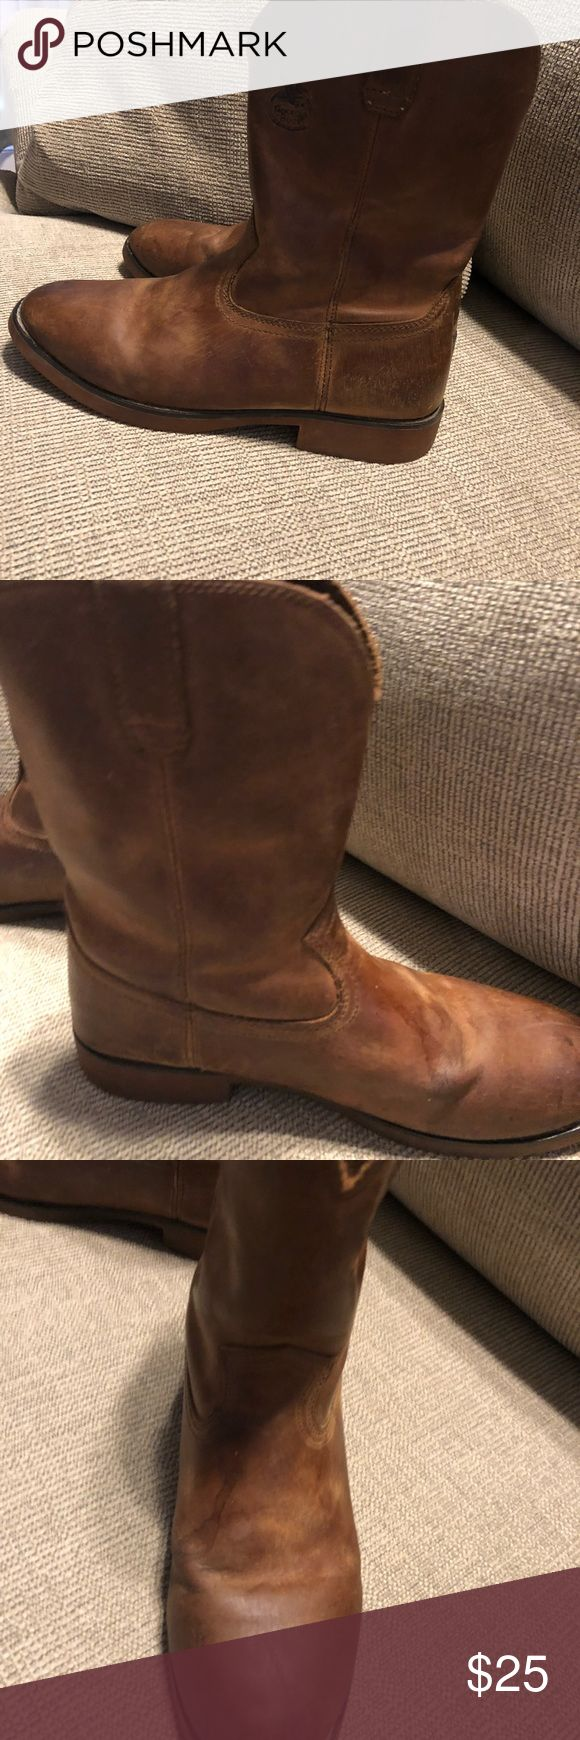 Men's Georgia Boots Size 7 Men's Boots Size 7  little wear and tear Georgia Boot Shoes Boots